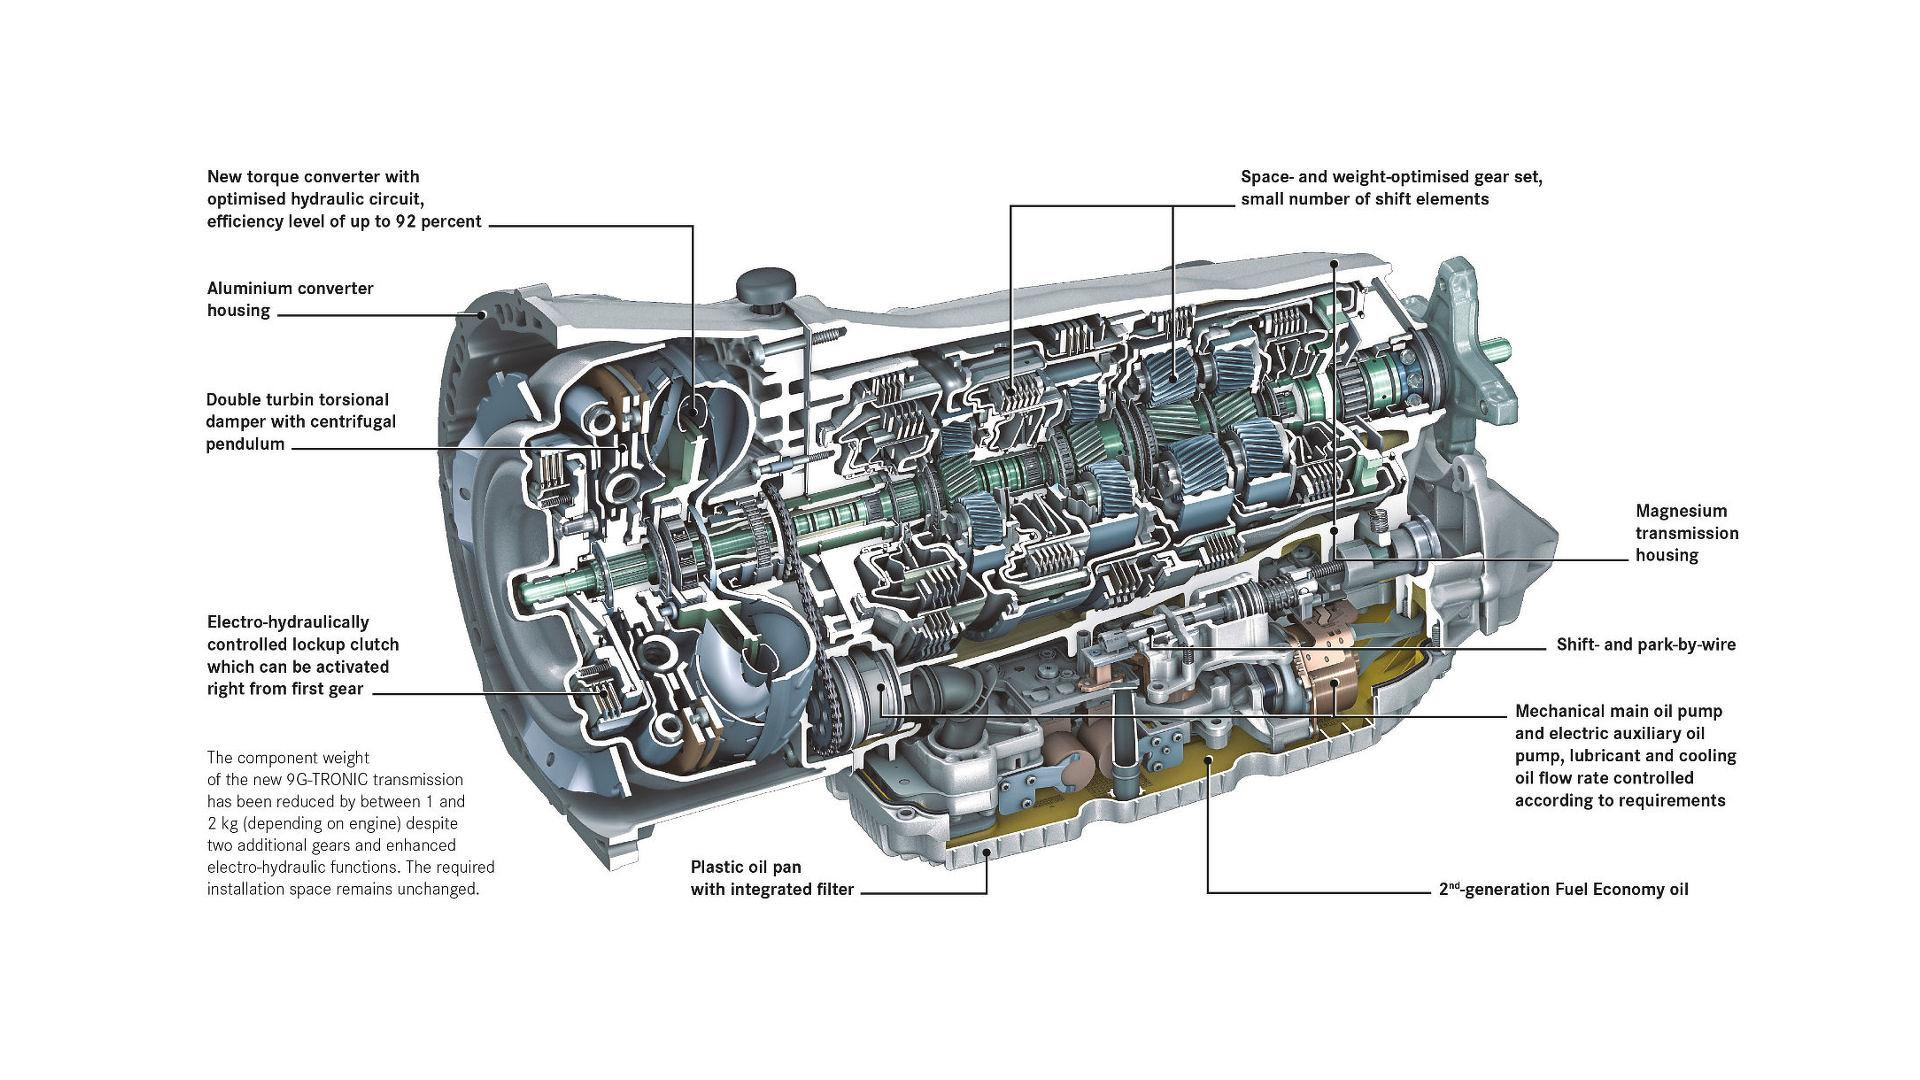 hight resolution of mercedes transmission diagram wiring diagram new mercedes transmission diagram mercedes 8 g tronic trademark filing points